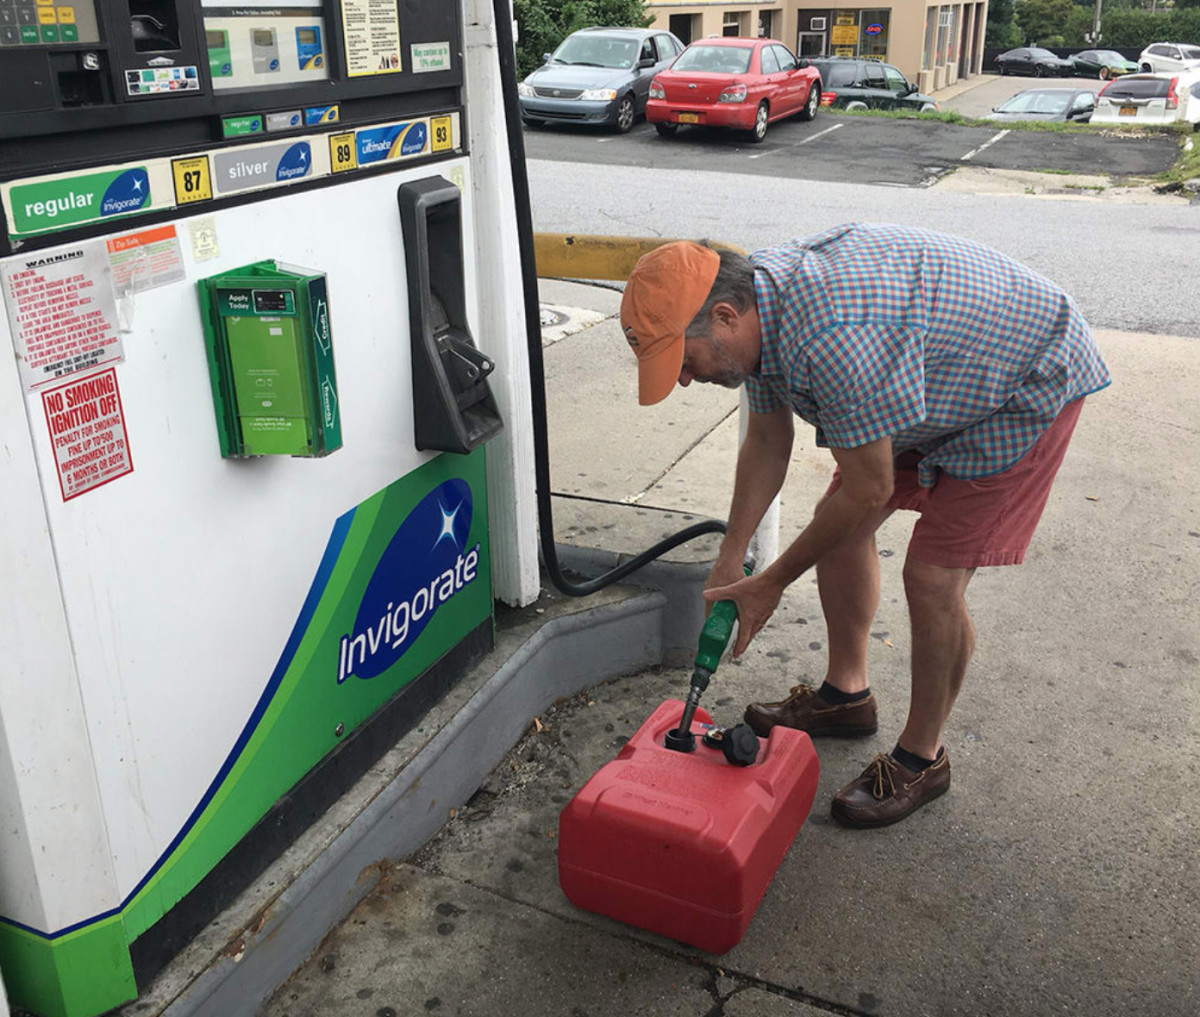 A BoatUS survey found that more than half of all boaters fill up at roadside stations.